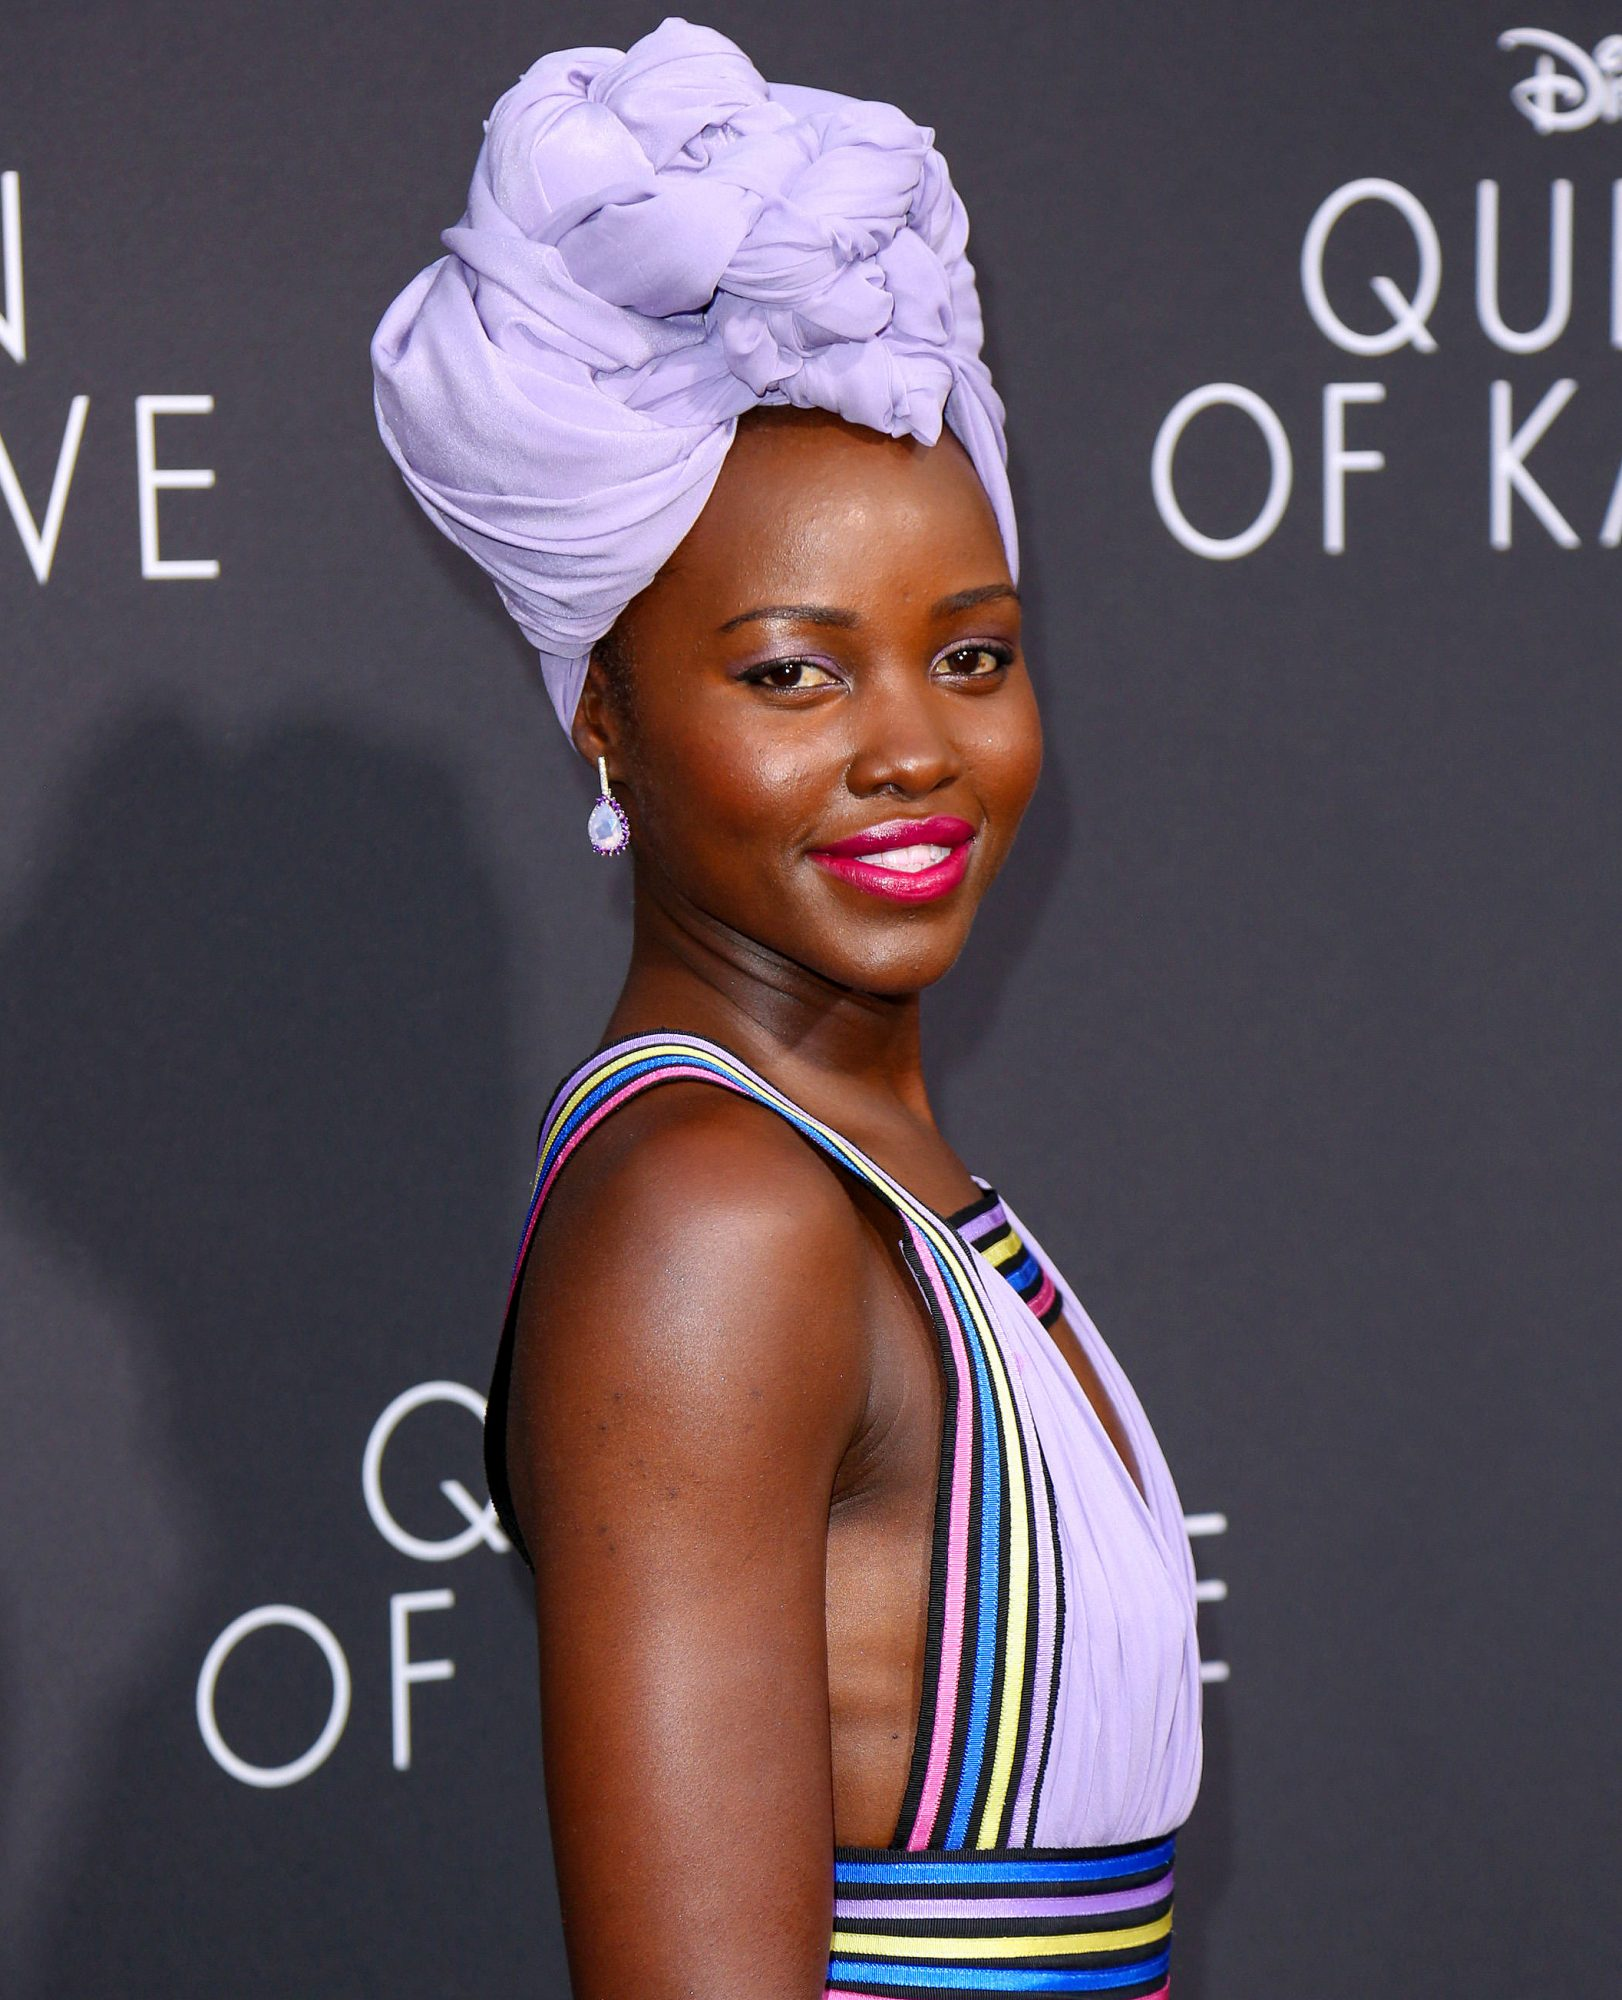 Premiere Of Disney's Queen Of Katwe at The El Capitan Theatre